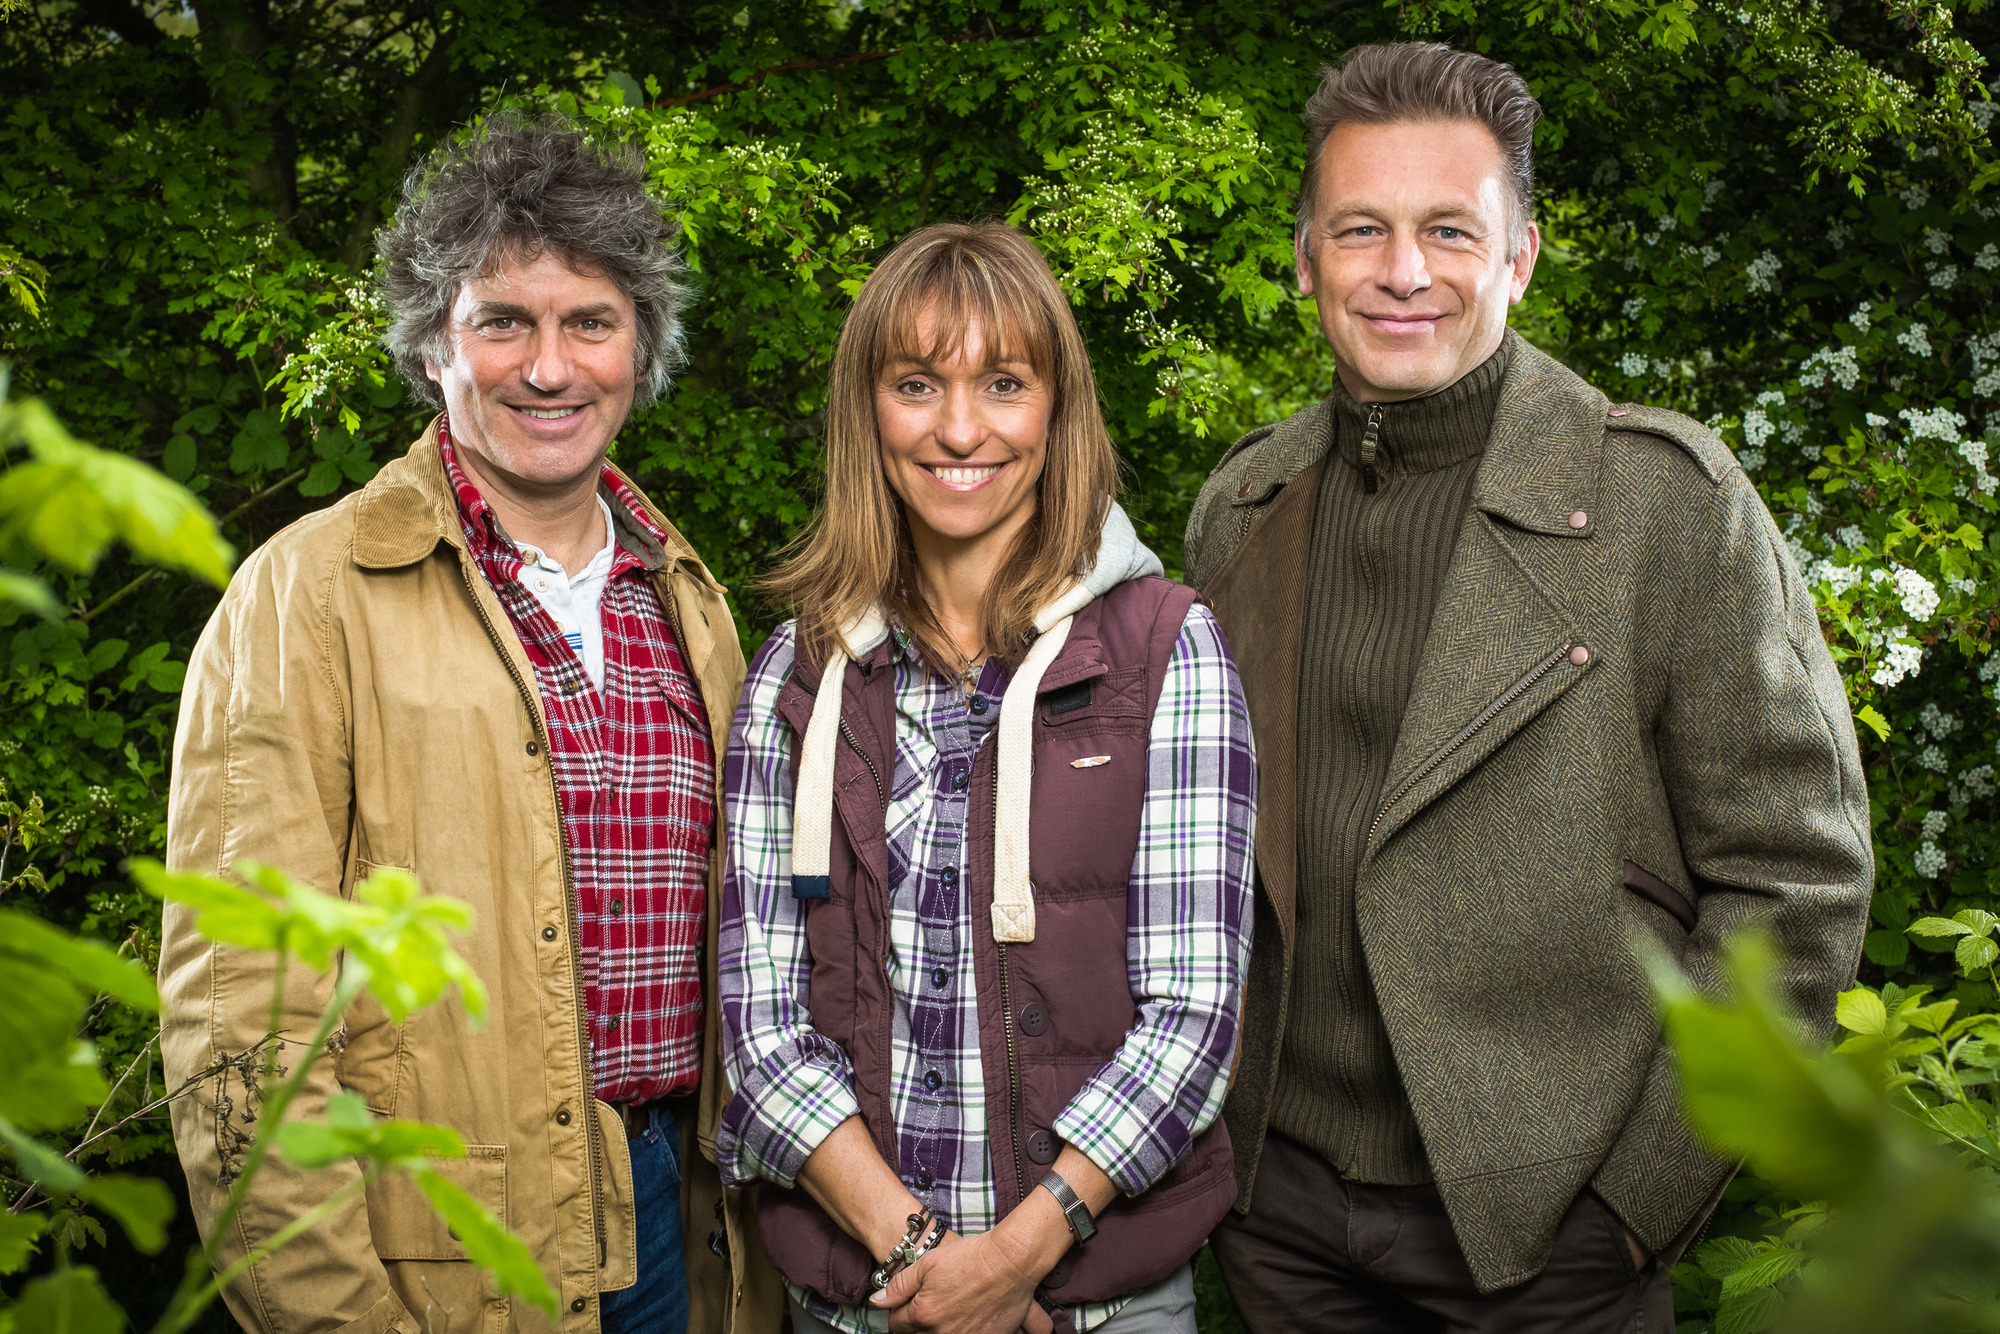 When does the new series of Springwatch start on BBC Two?